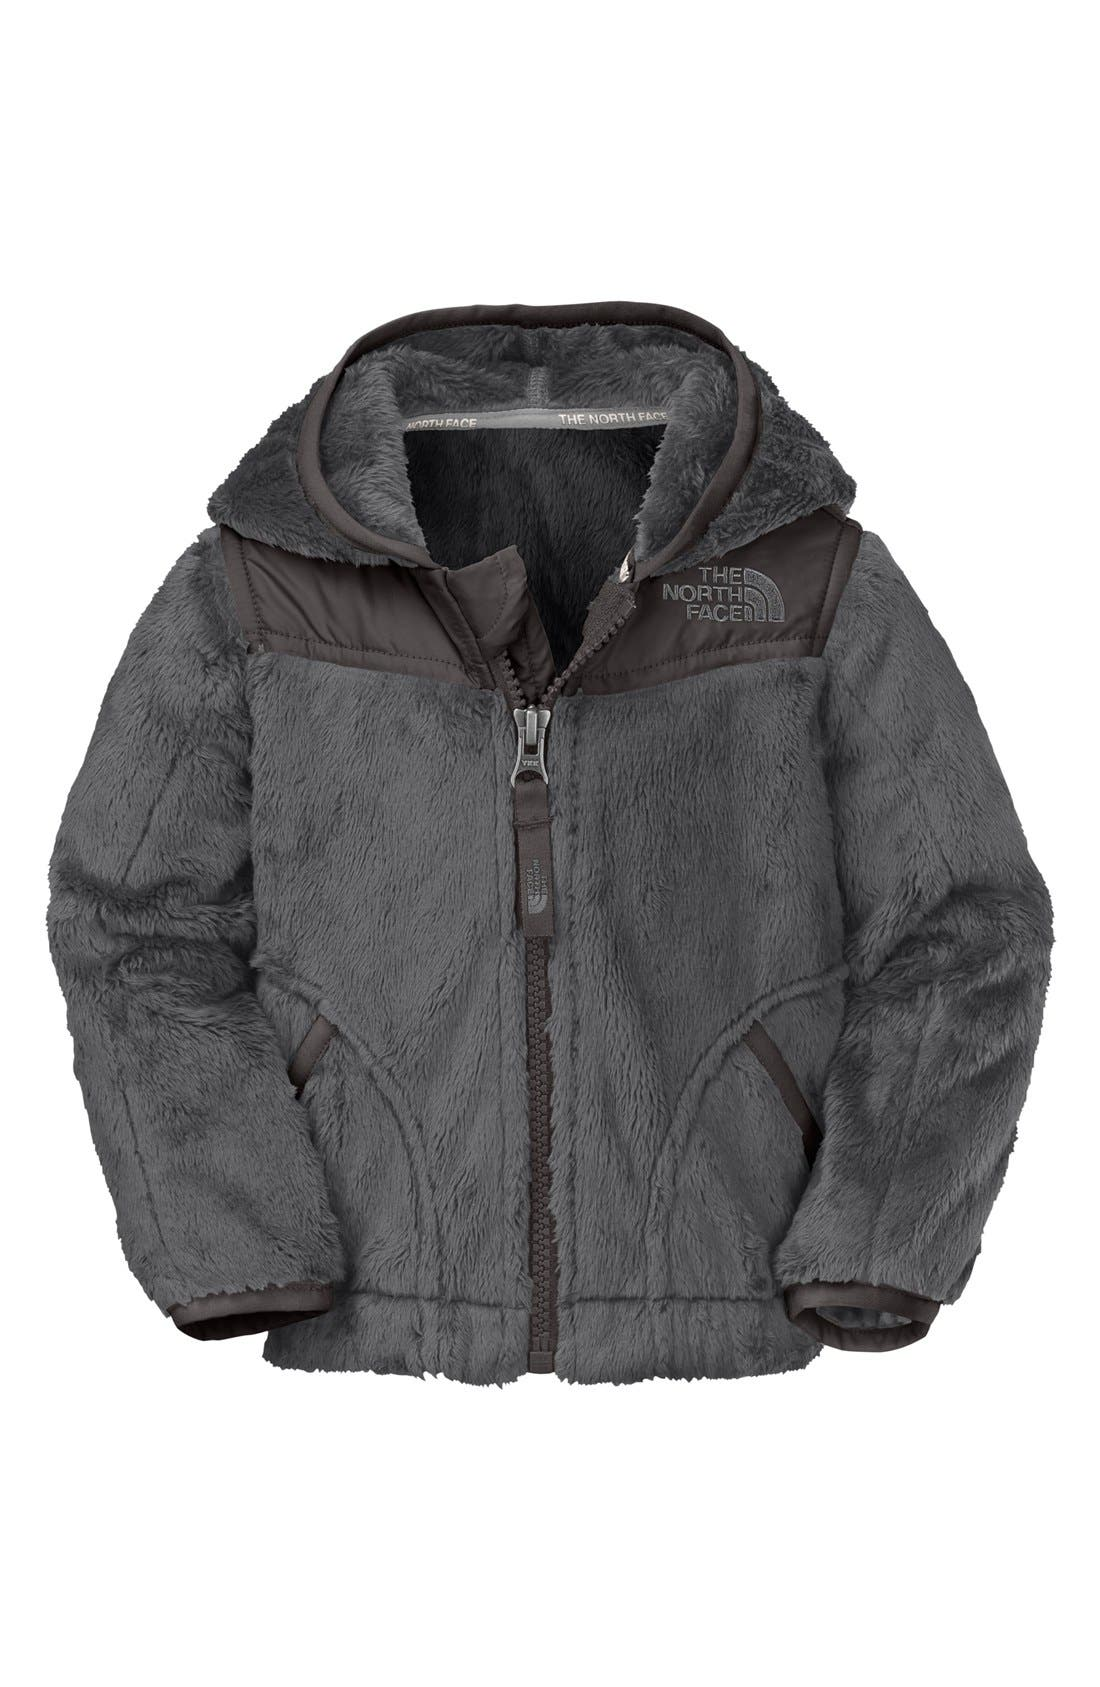 Alternate Image 1 Selected - The North Face 'Oso' Fleece Hoodie (Baby Boys)